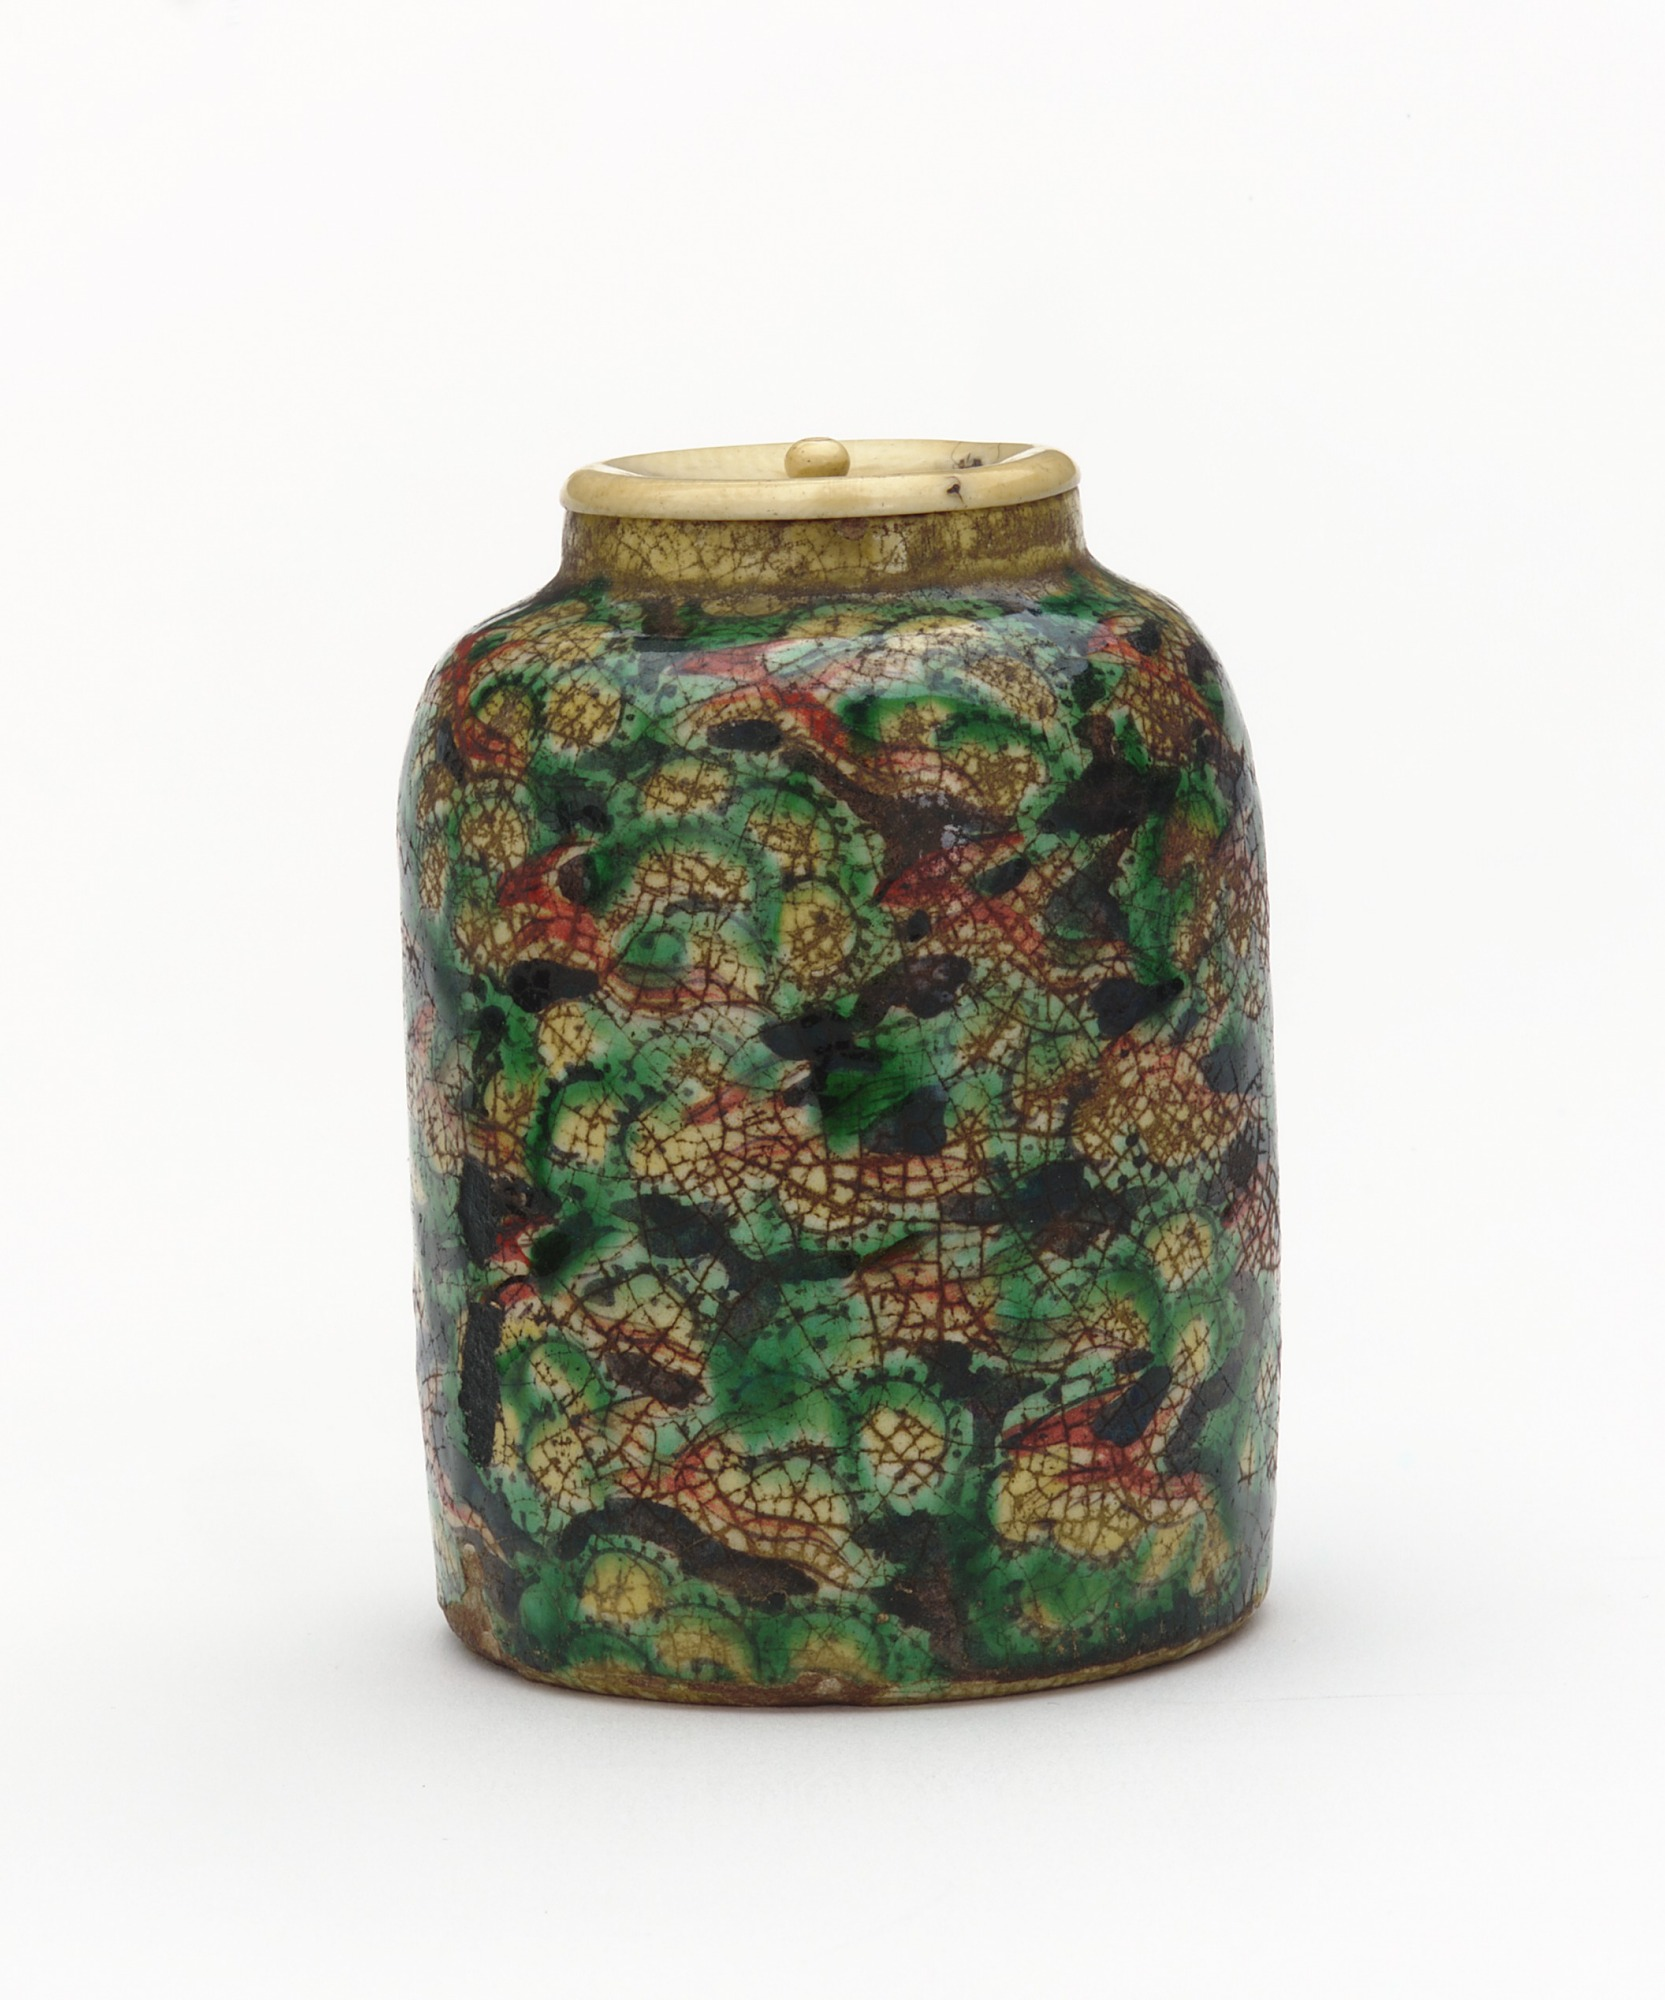 Powdered tea container with design of phoenix and clouds